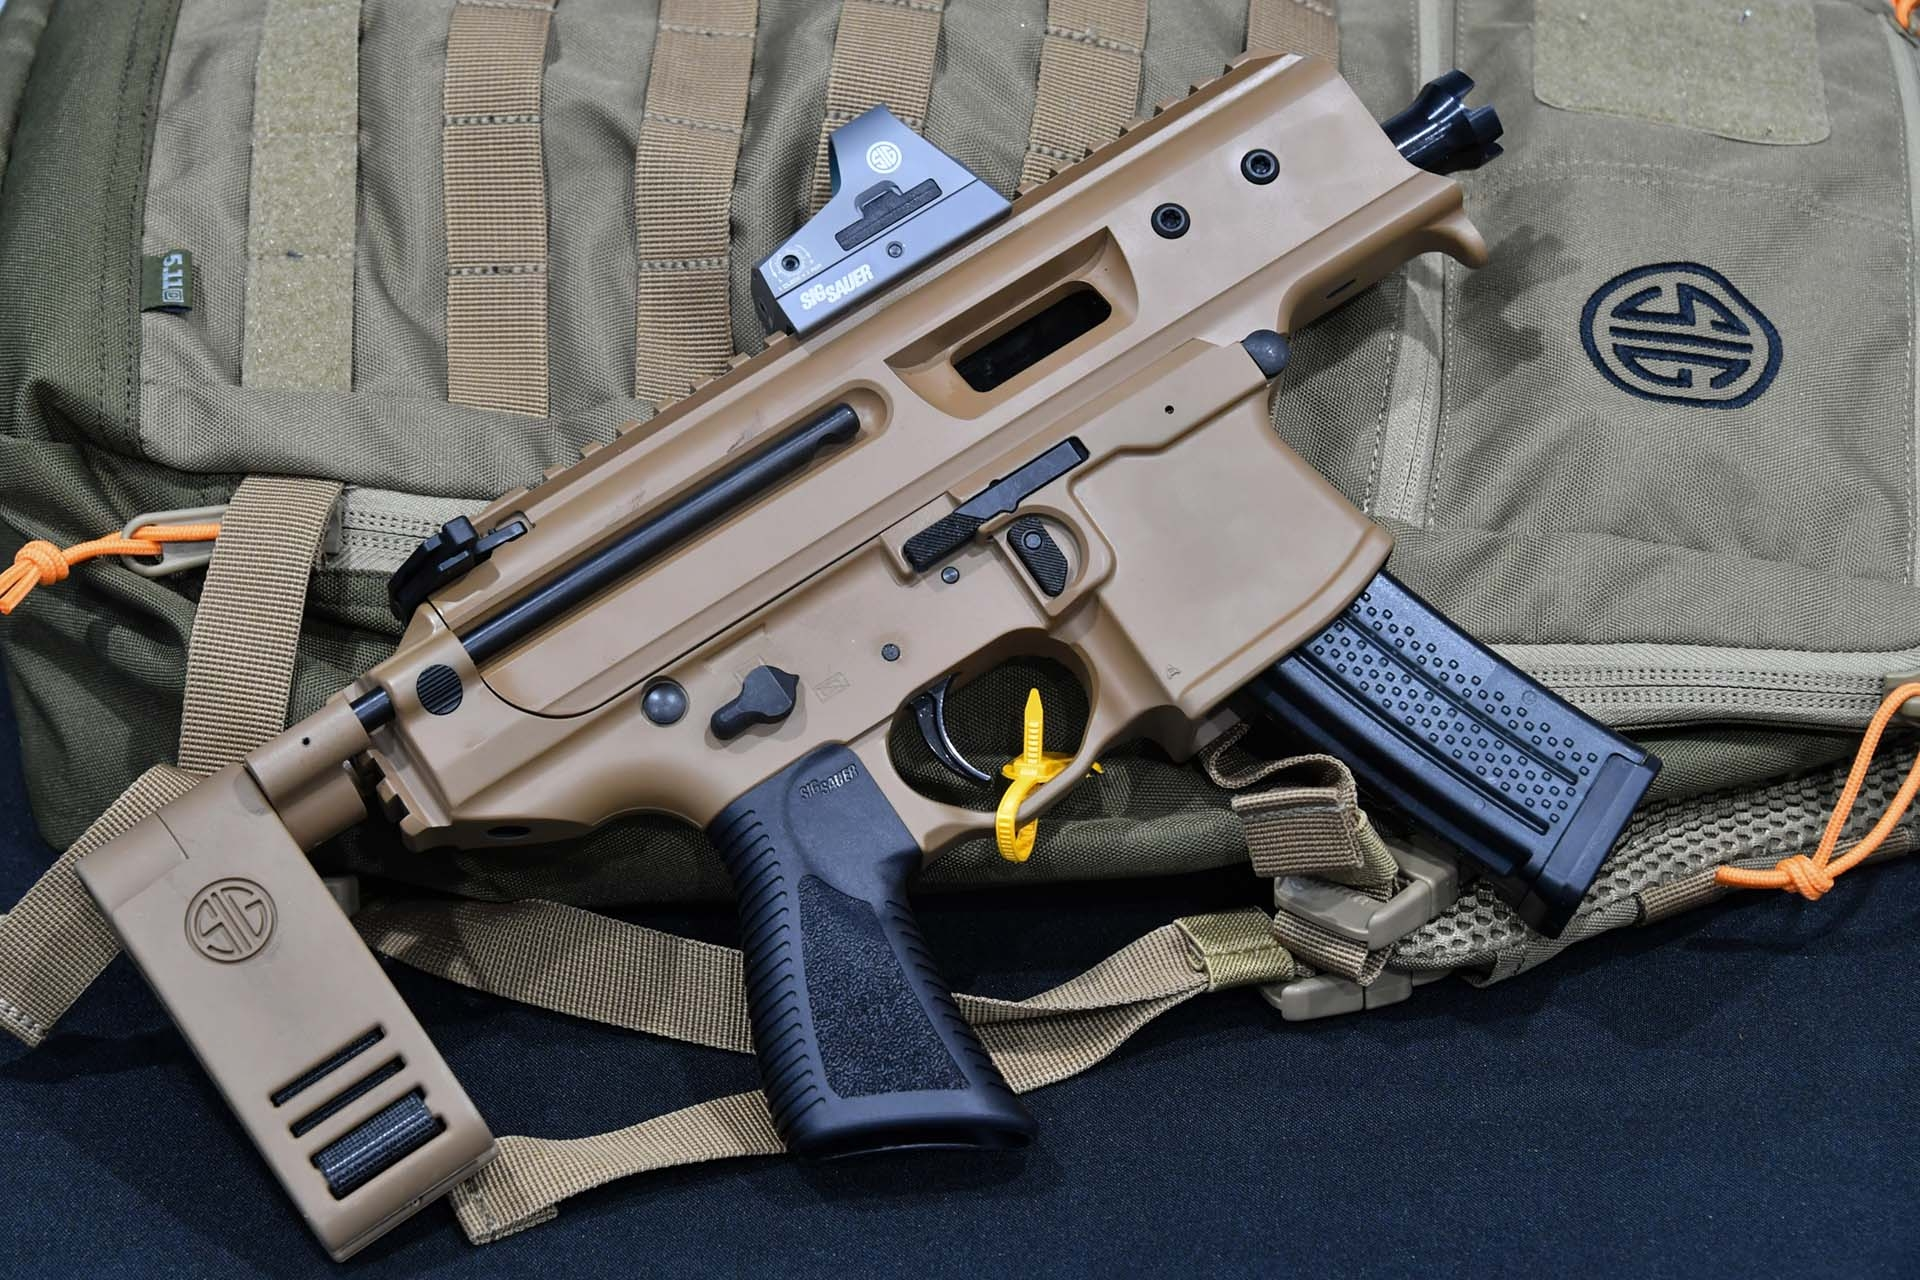 The SIG Sauer MPX Copperhead sub-machine gun with the new SIG SAUER Pivoting Contour Brace (PCB) extended.